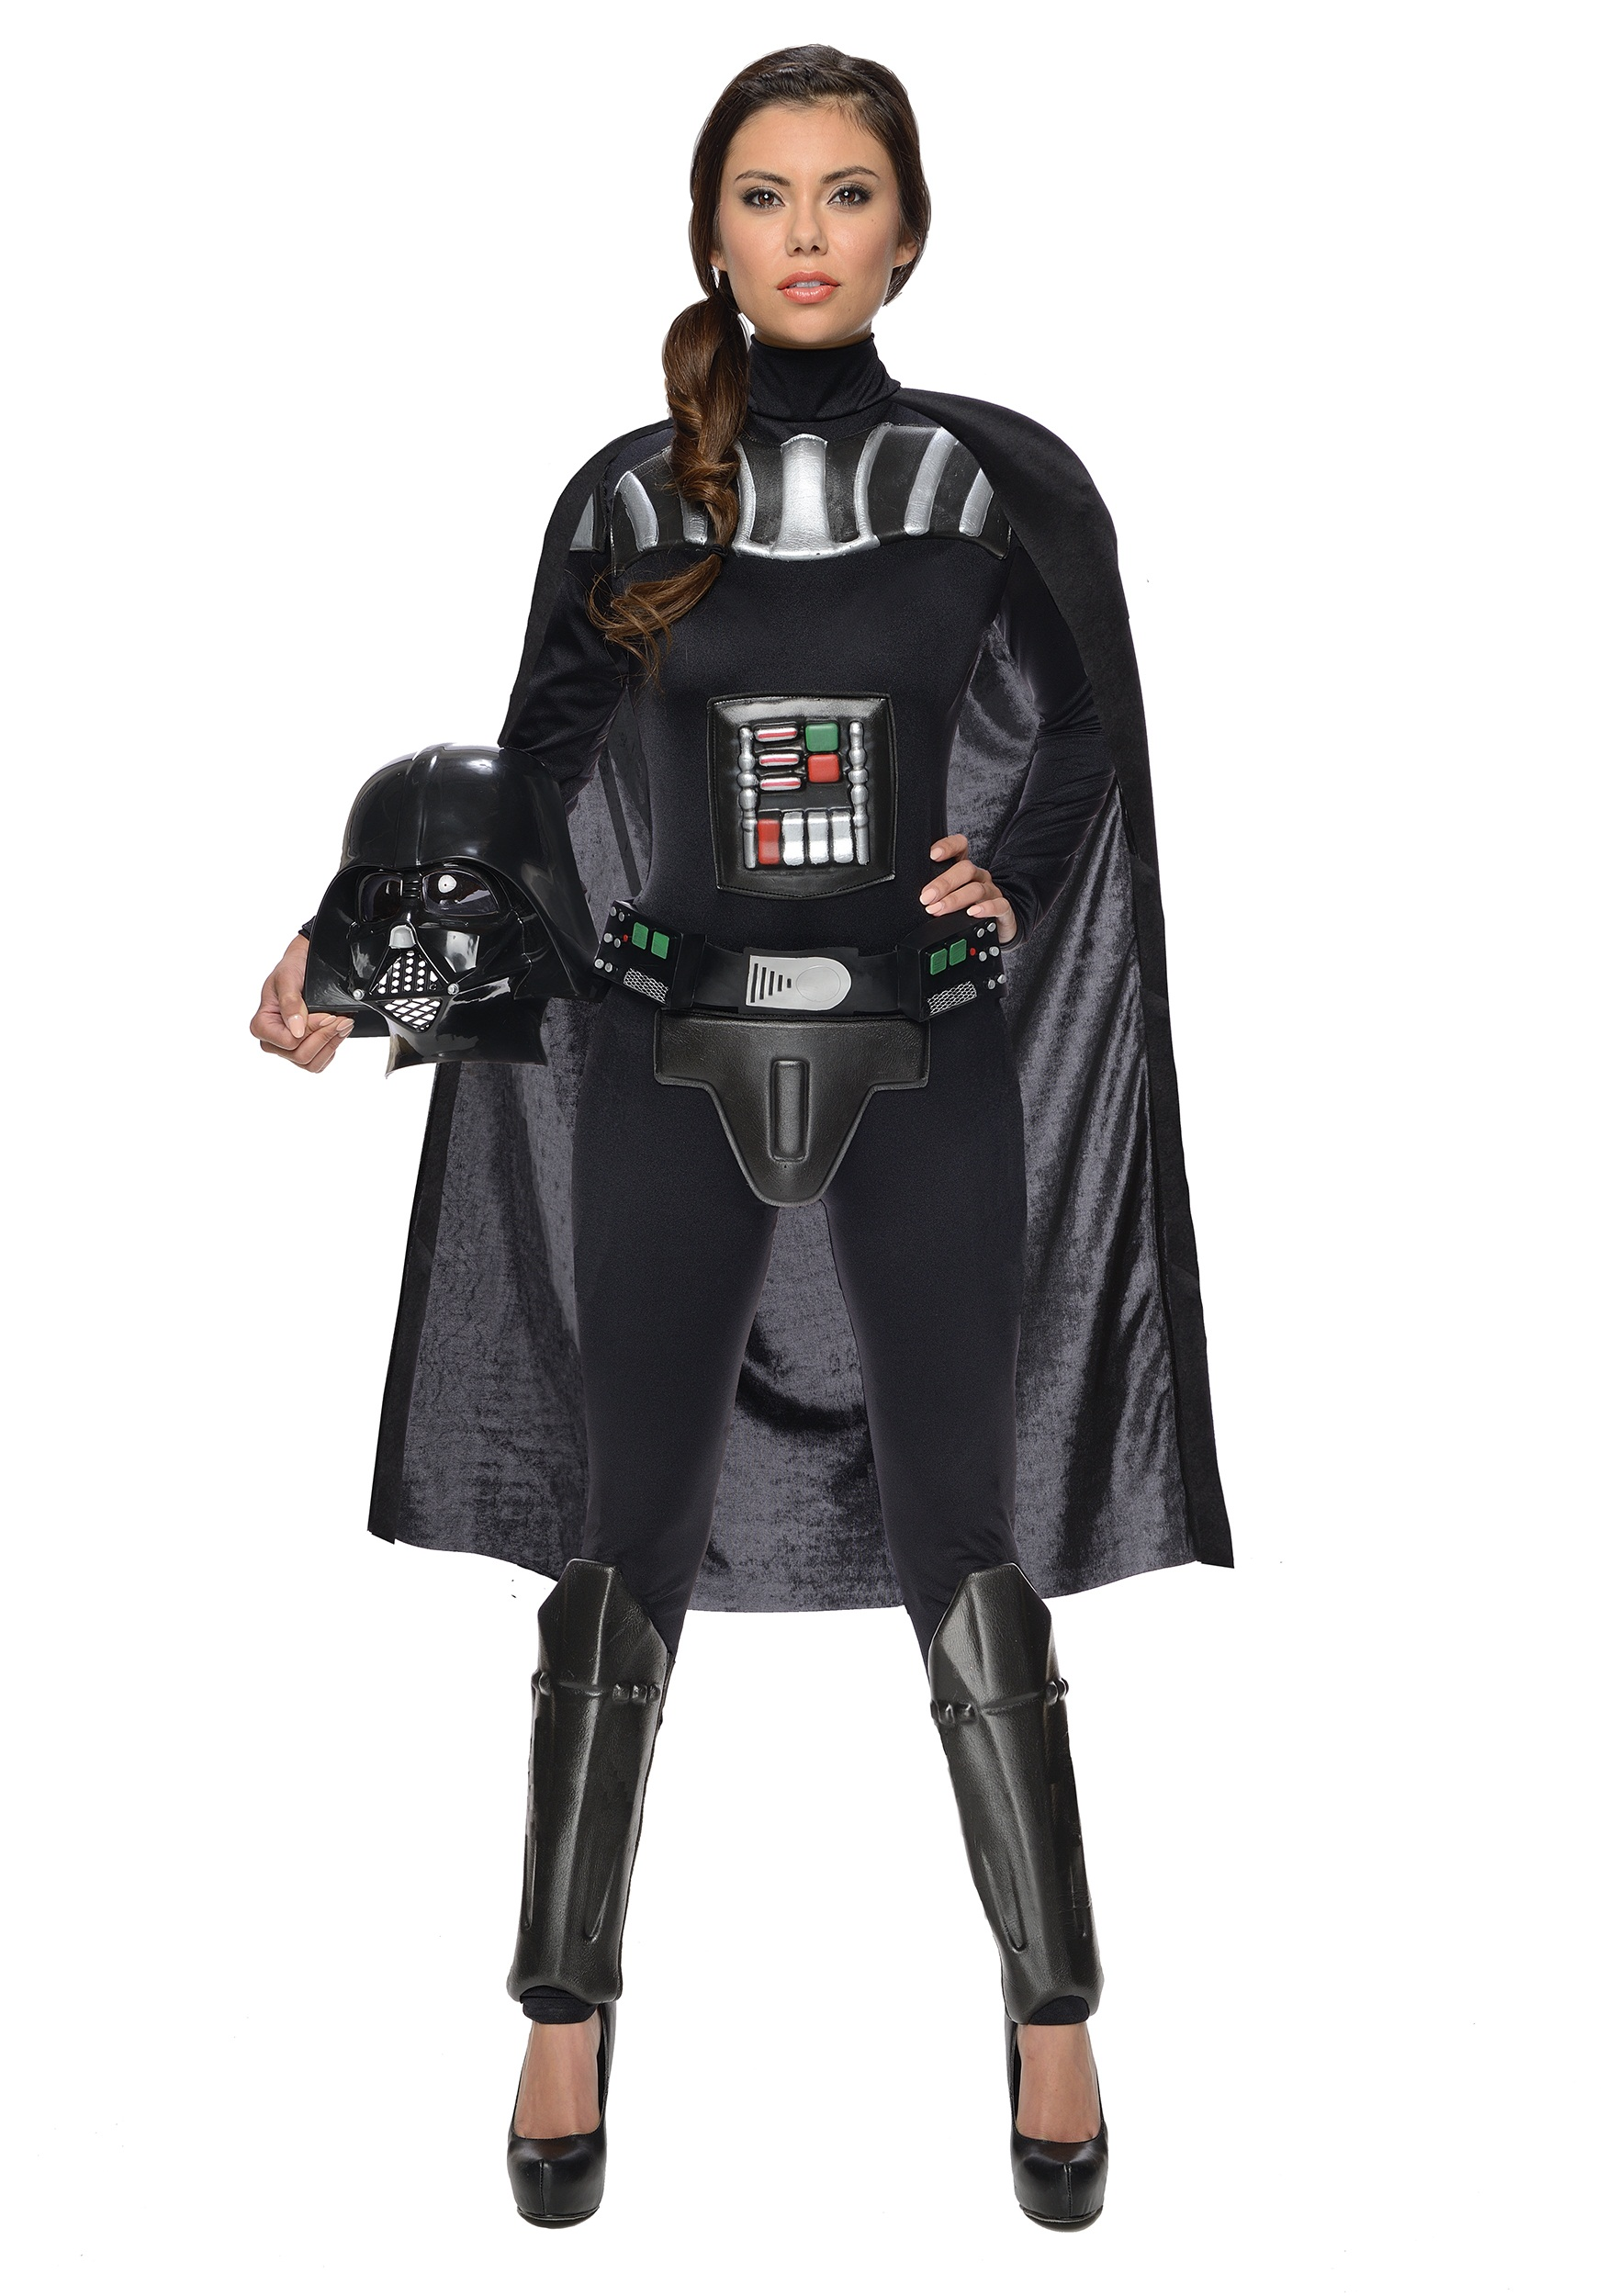 star wars female darth vader bodysuit costume. Black Bedroom Furniture Sets. Home Design Ideas